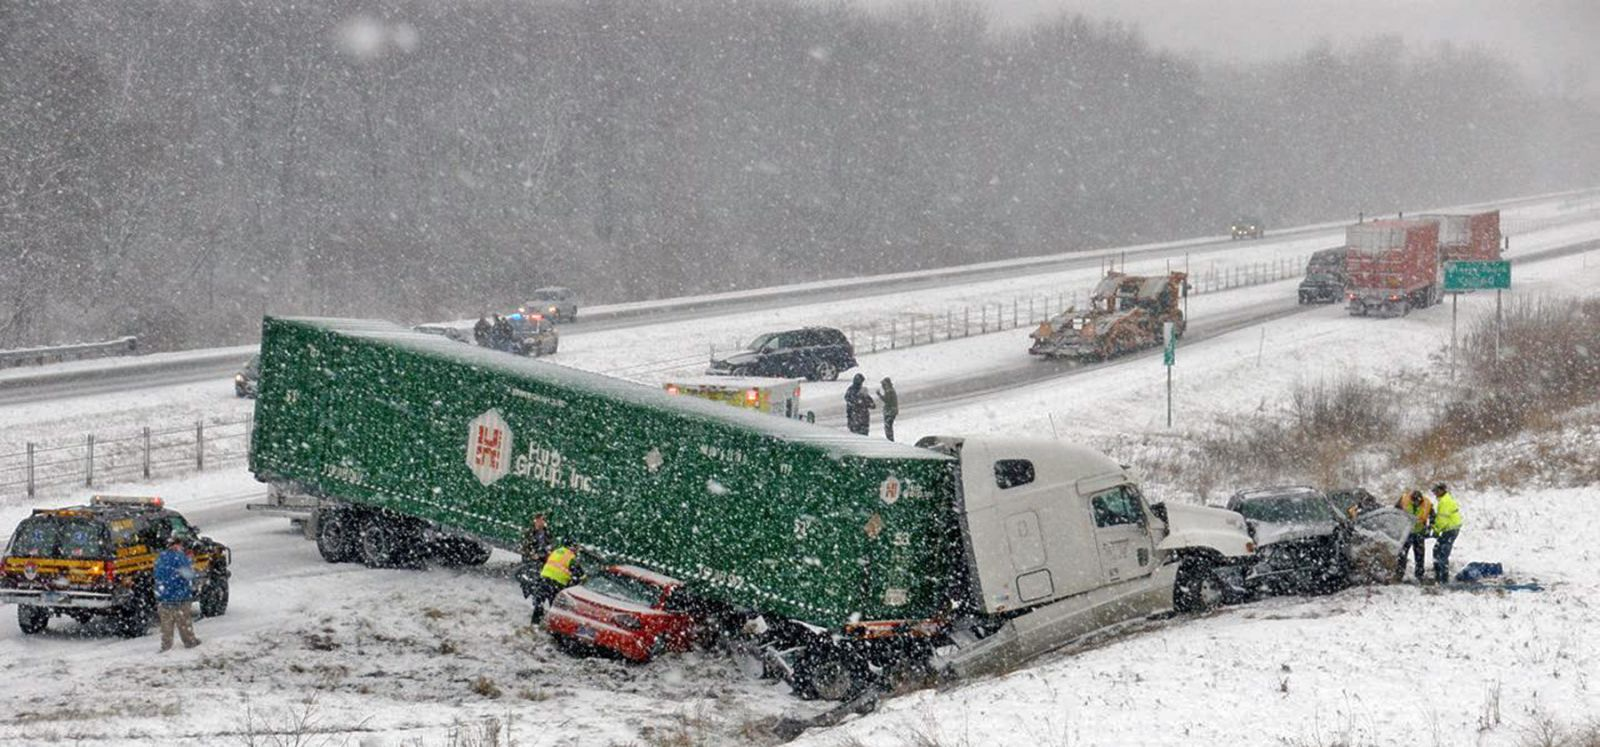 Personal injuries involving commercial truck accidents